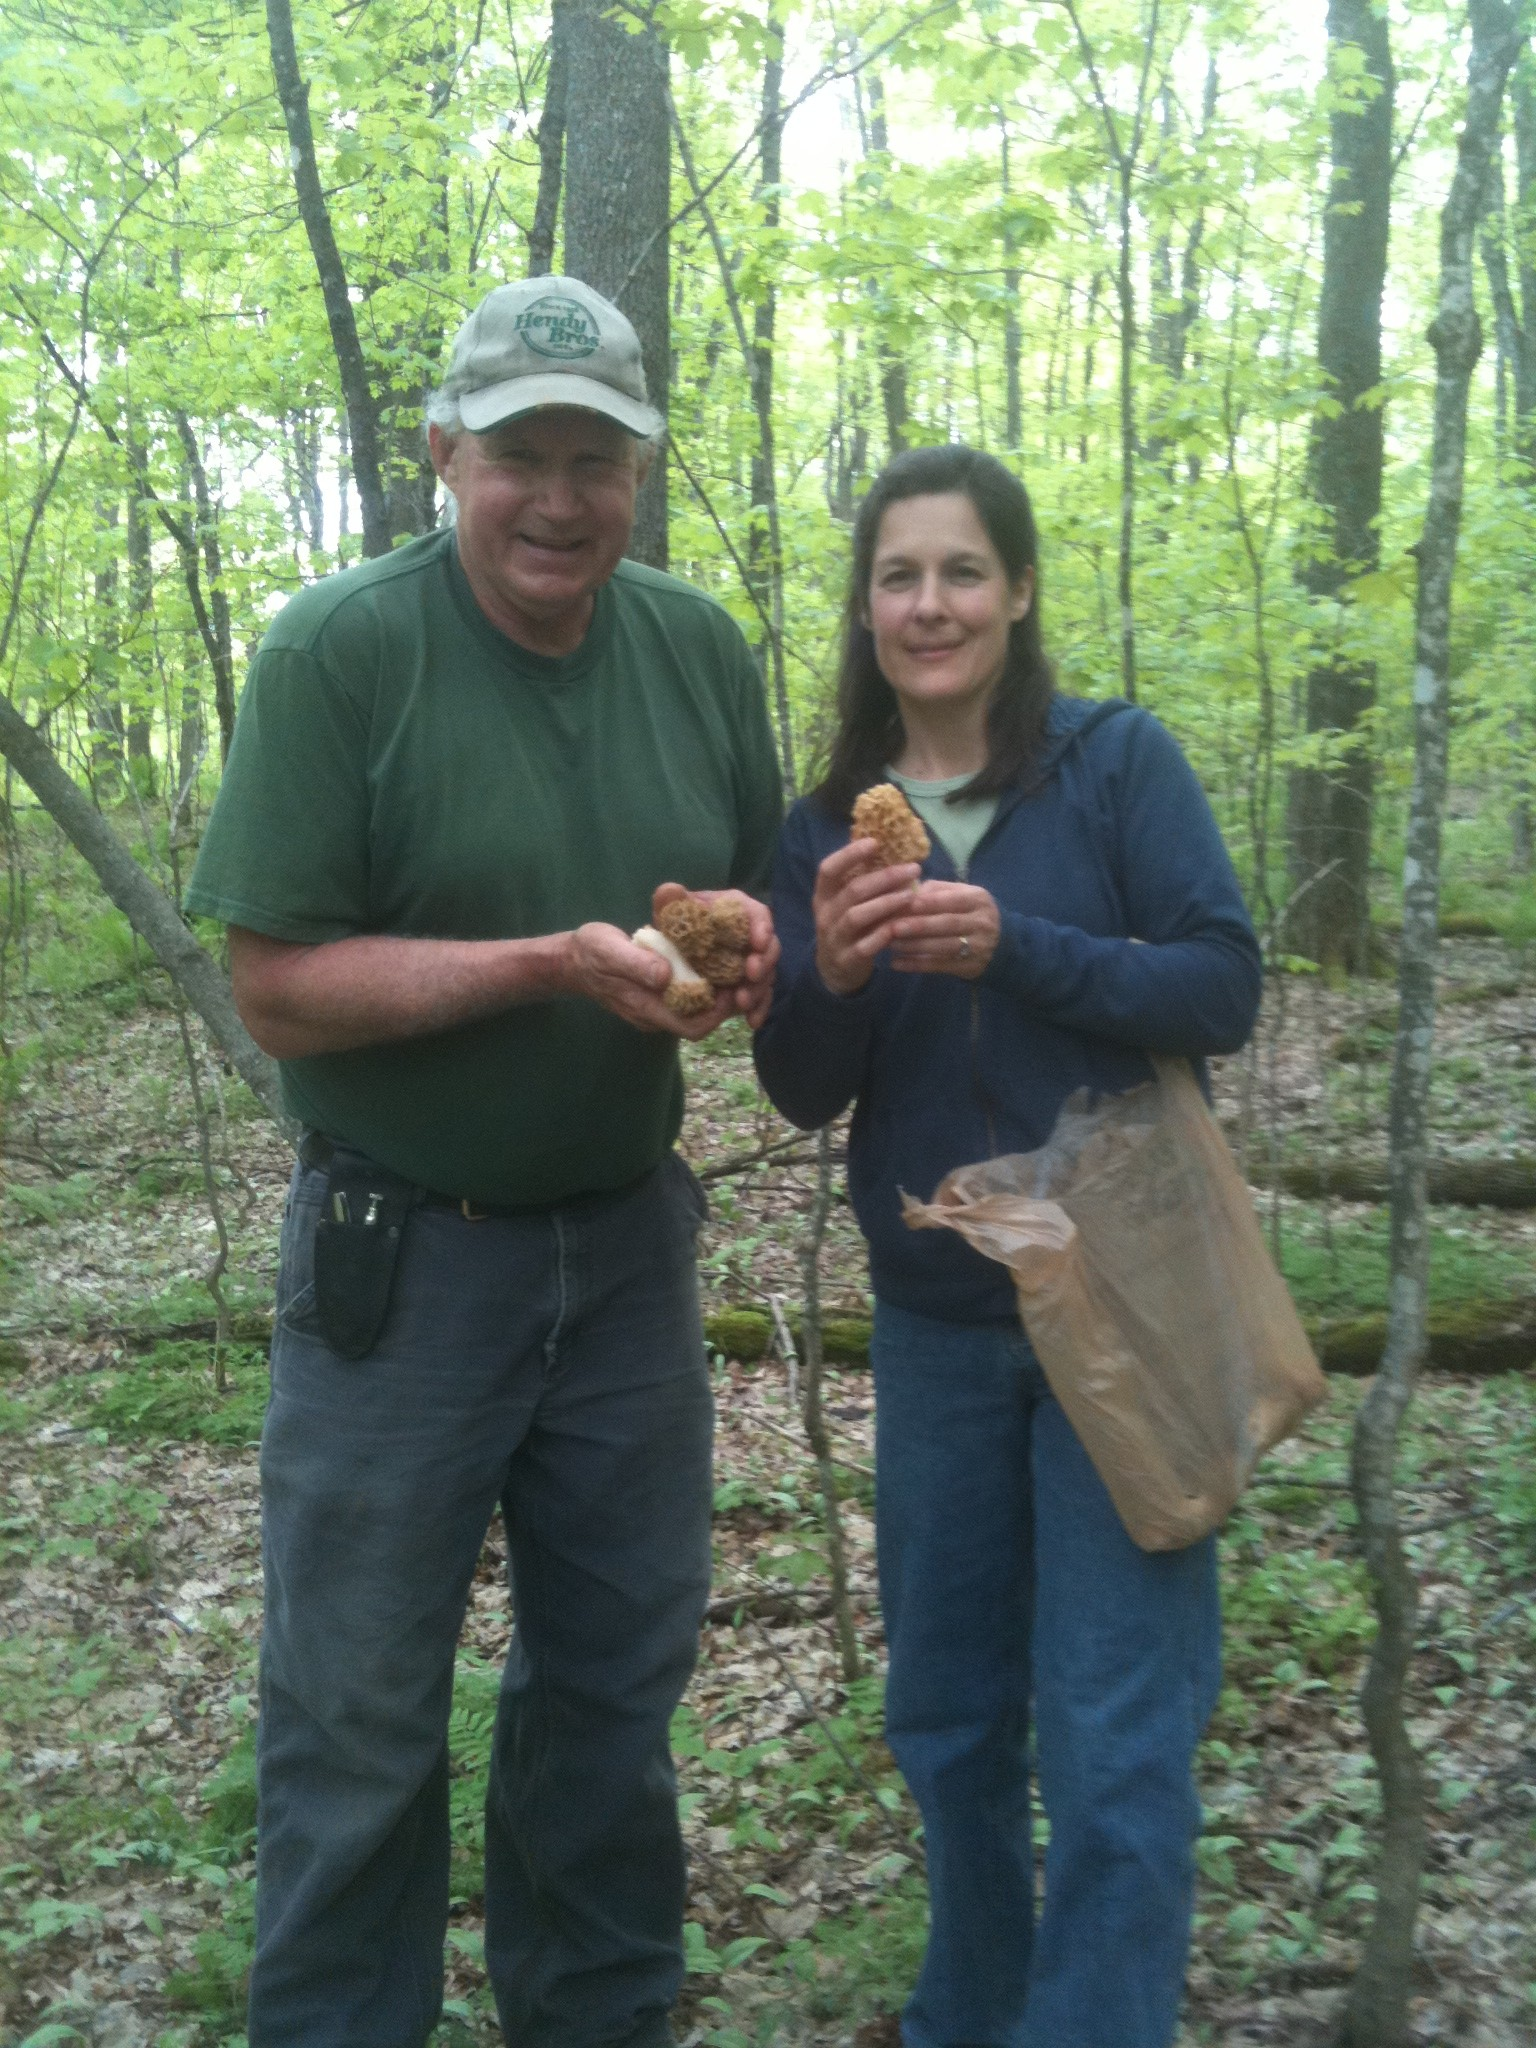 Bill & Cathy Emmons on Forest Walk with Patrick locating mushrooms